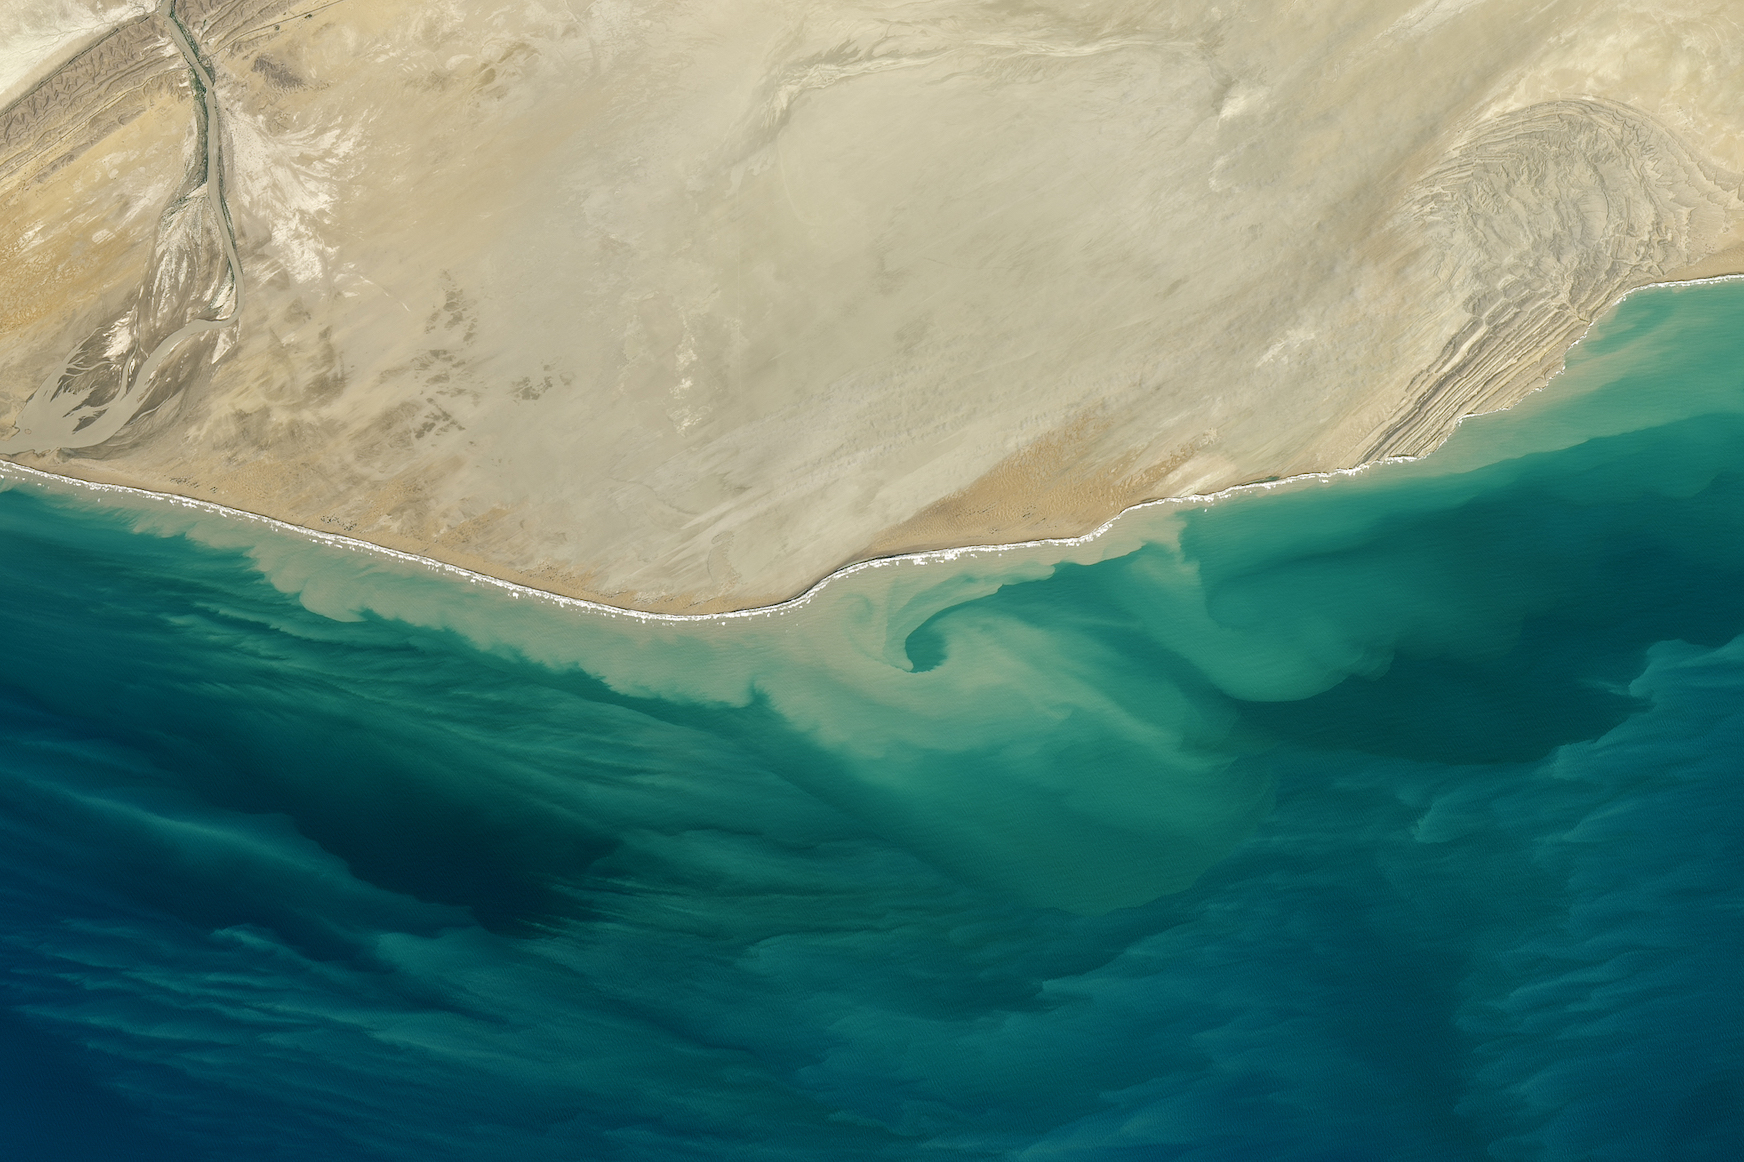 Today's Image of the Day comes thanks to the NASA Earth Observatory and features a look at the Makran Coast of Pakistan and the Arabian Sea.